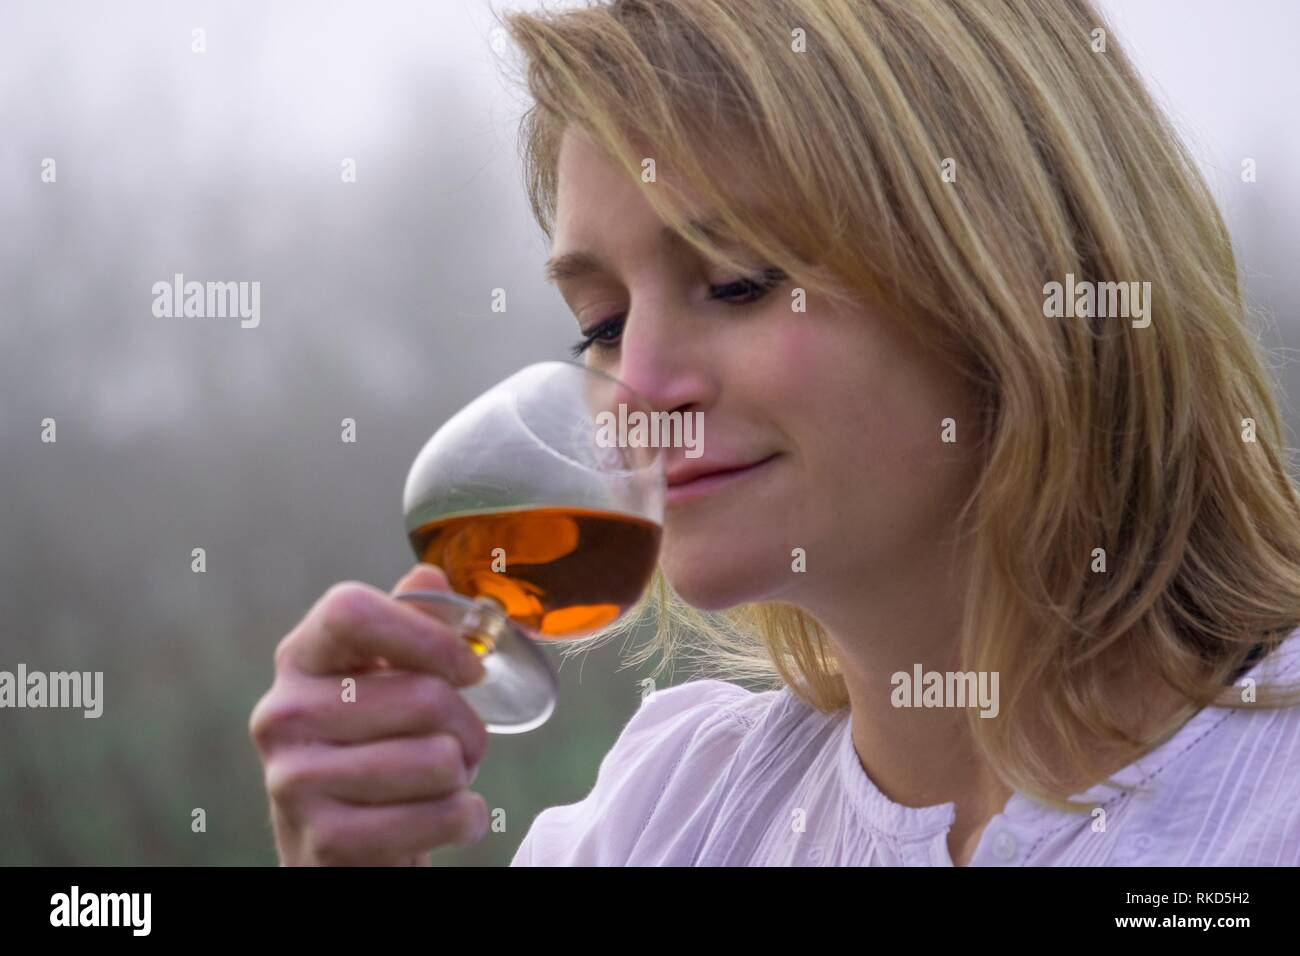 France, Occitanie, Gers, at the ''Armagnac Delord Estate'' at Lannepax. Tasting Armagnac. - Stock Image